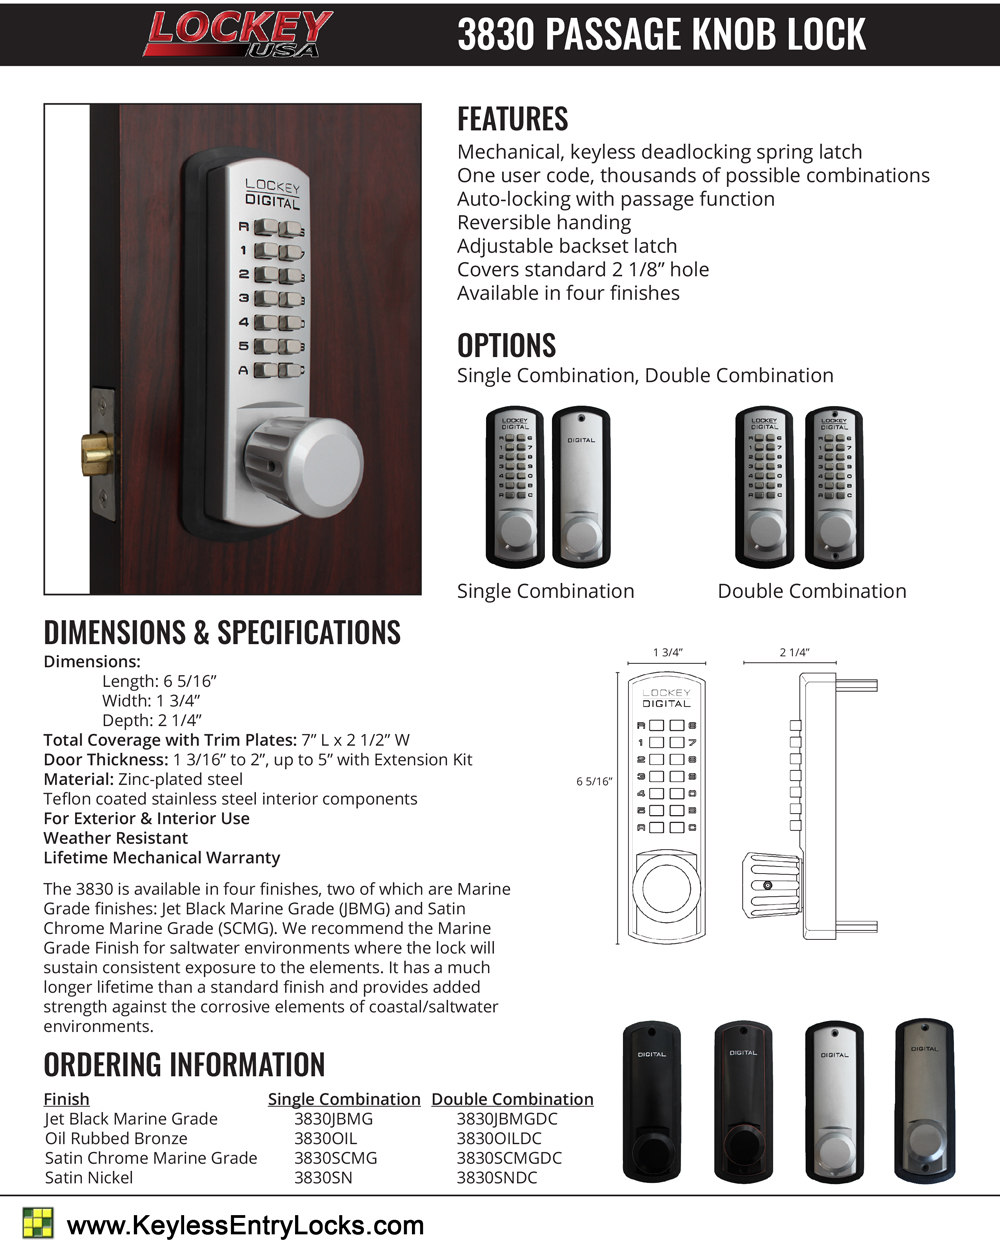 Lockey 3830 Passage Knob Latchbolt Keypad Lock